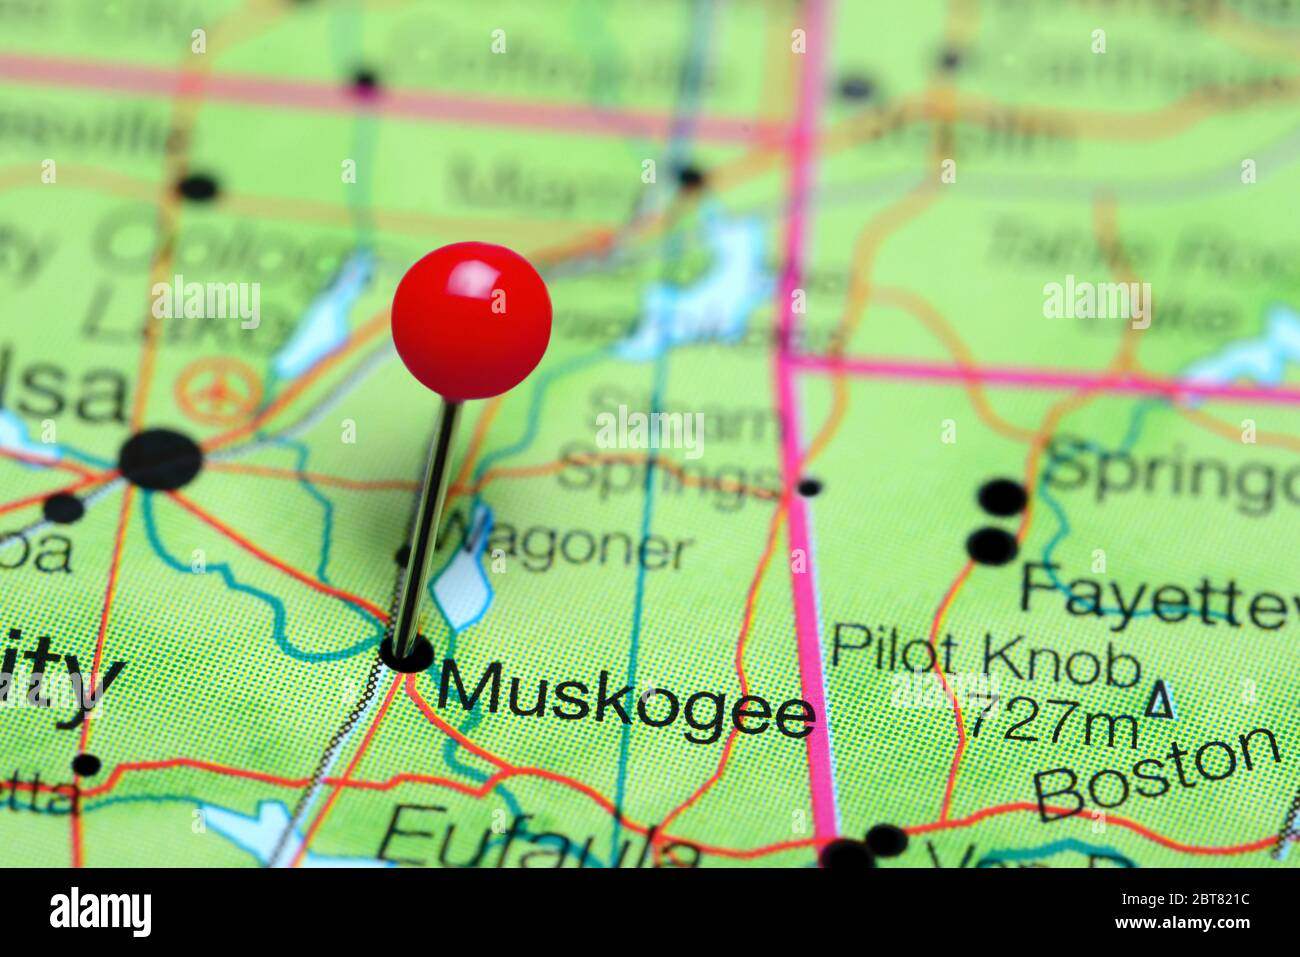 Muskogee pinned on a map of Oklahoma, USA Stock Photo